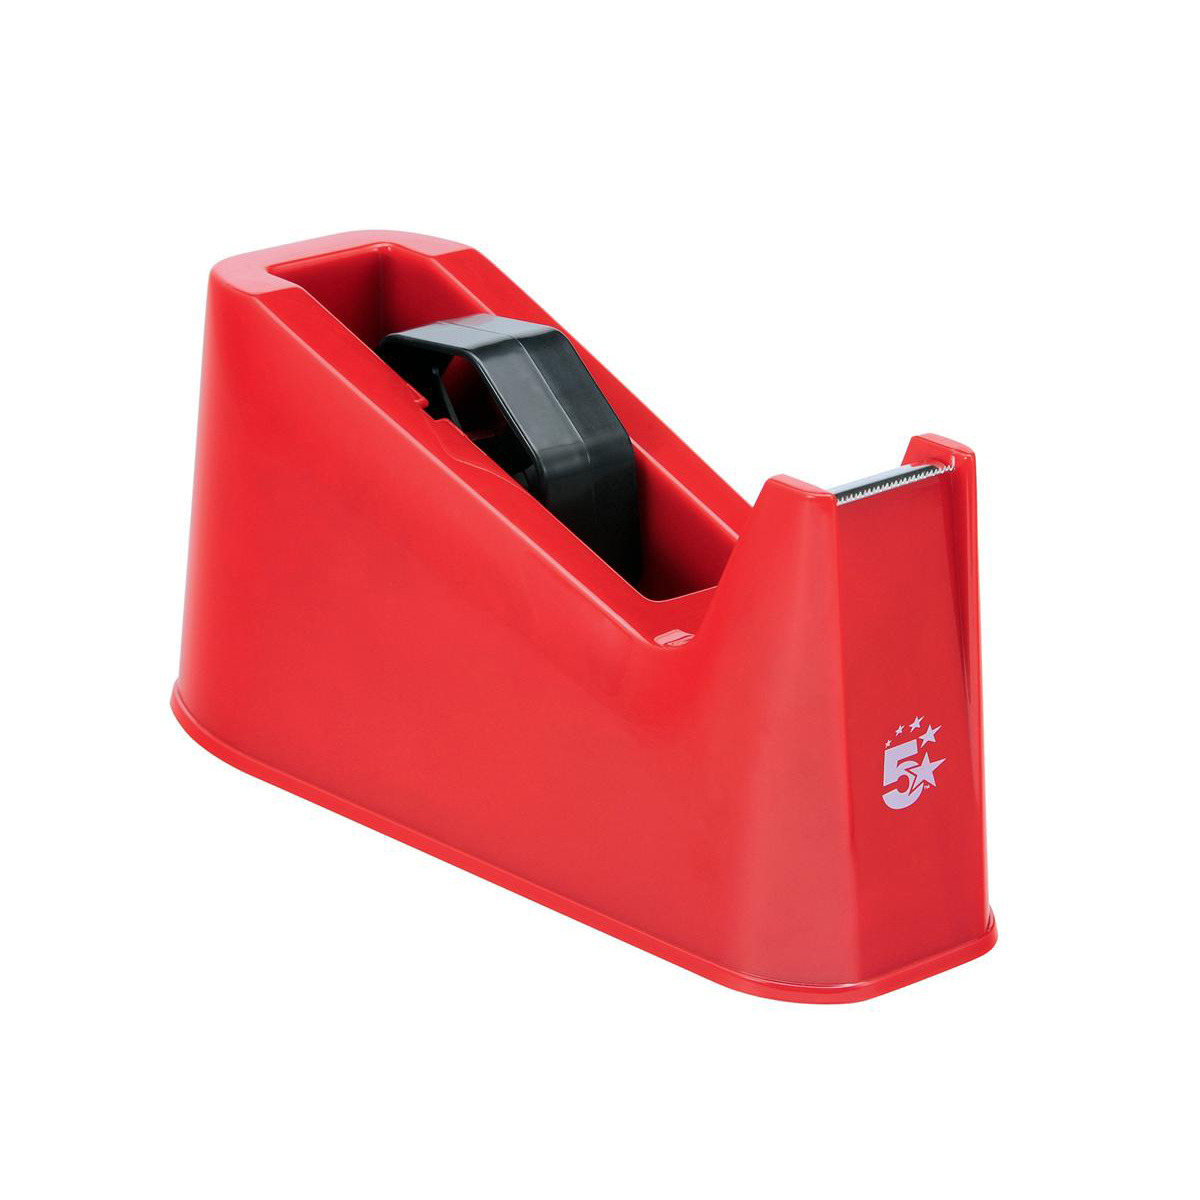 5 Star Office Tape Dispenser Desktop Weighted Non-slip Roll Capacity 25mm Width 66m Length Red